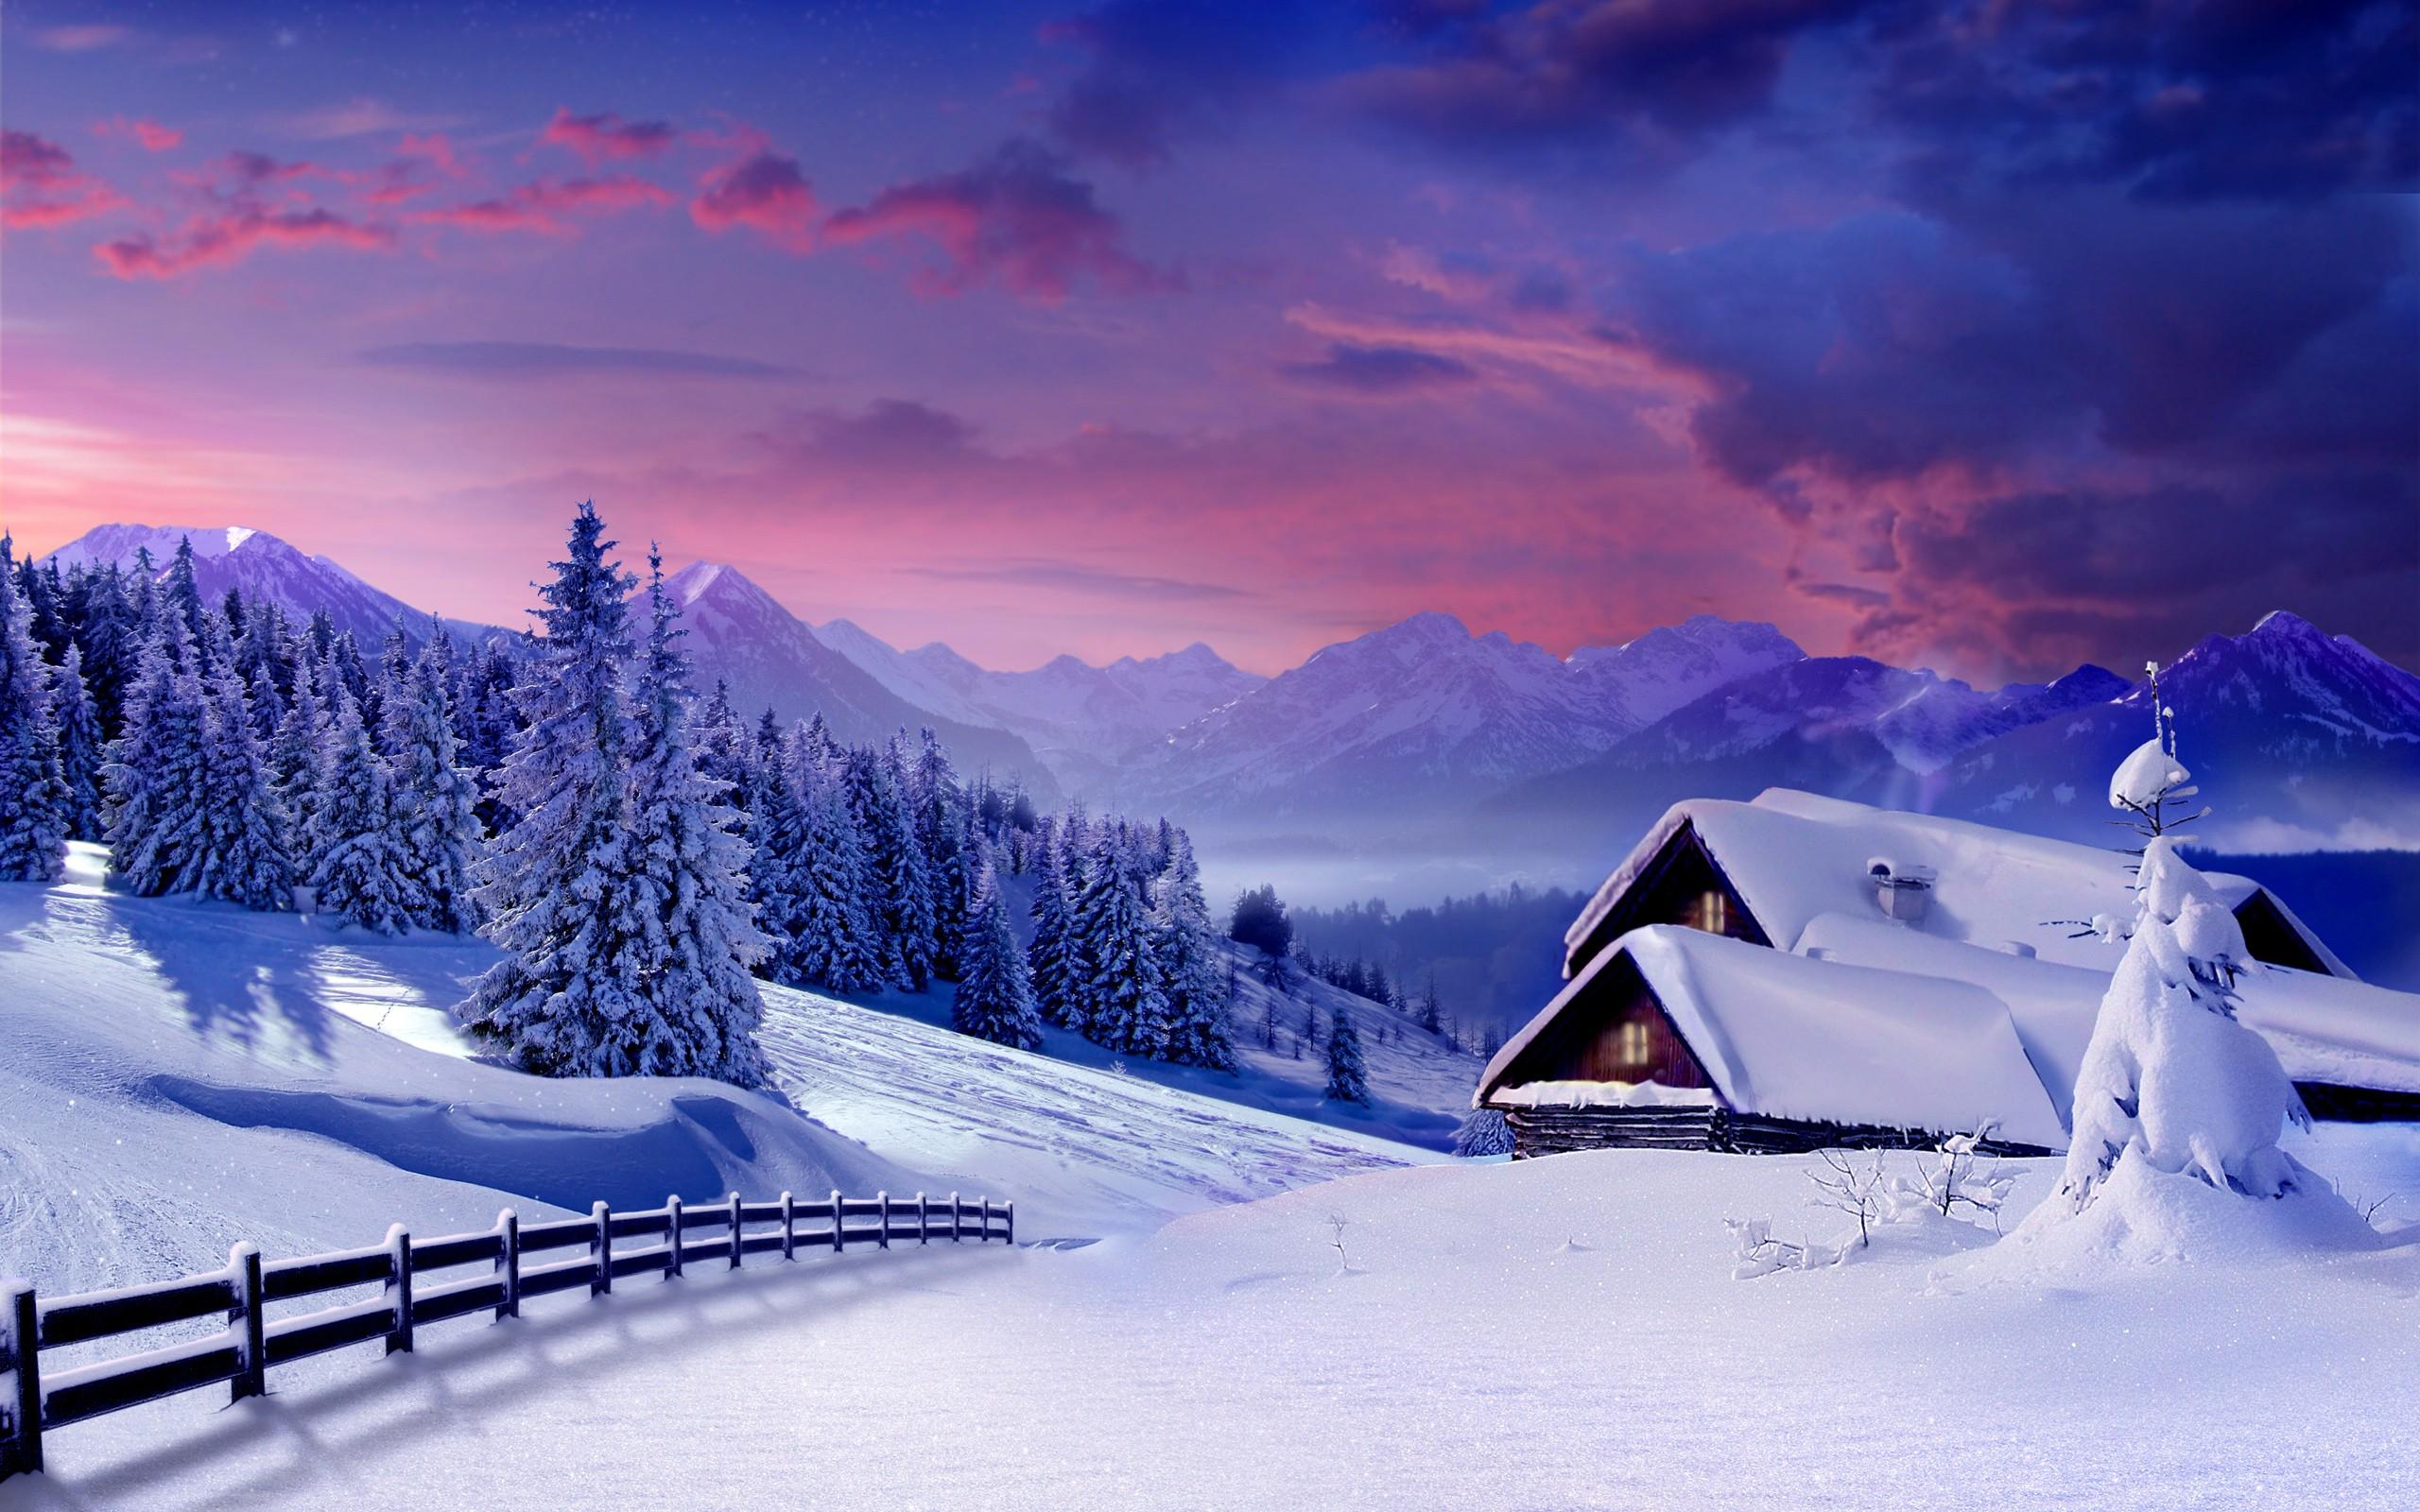 Winter Photos Backgrounds High Resolution Wallpaper 2560x1600